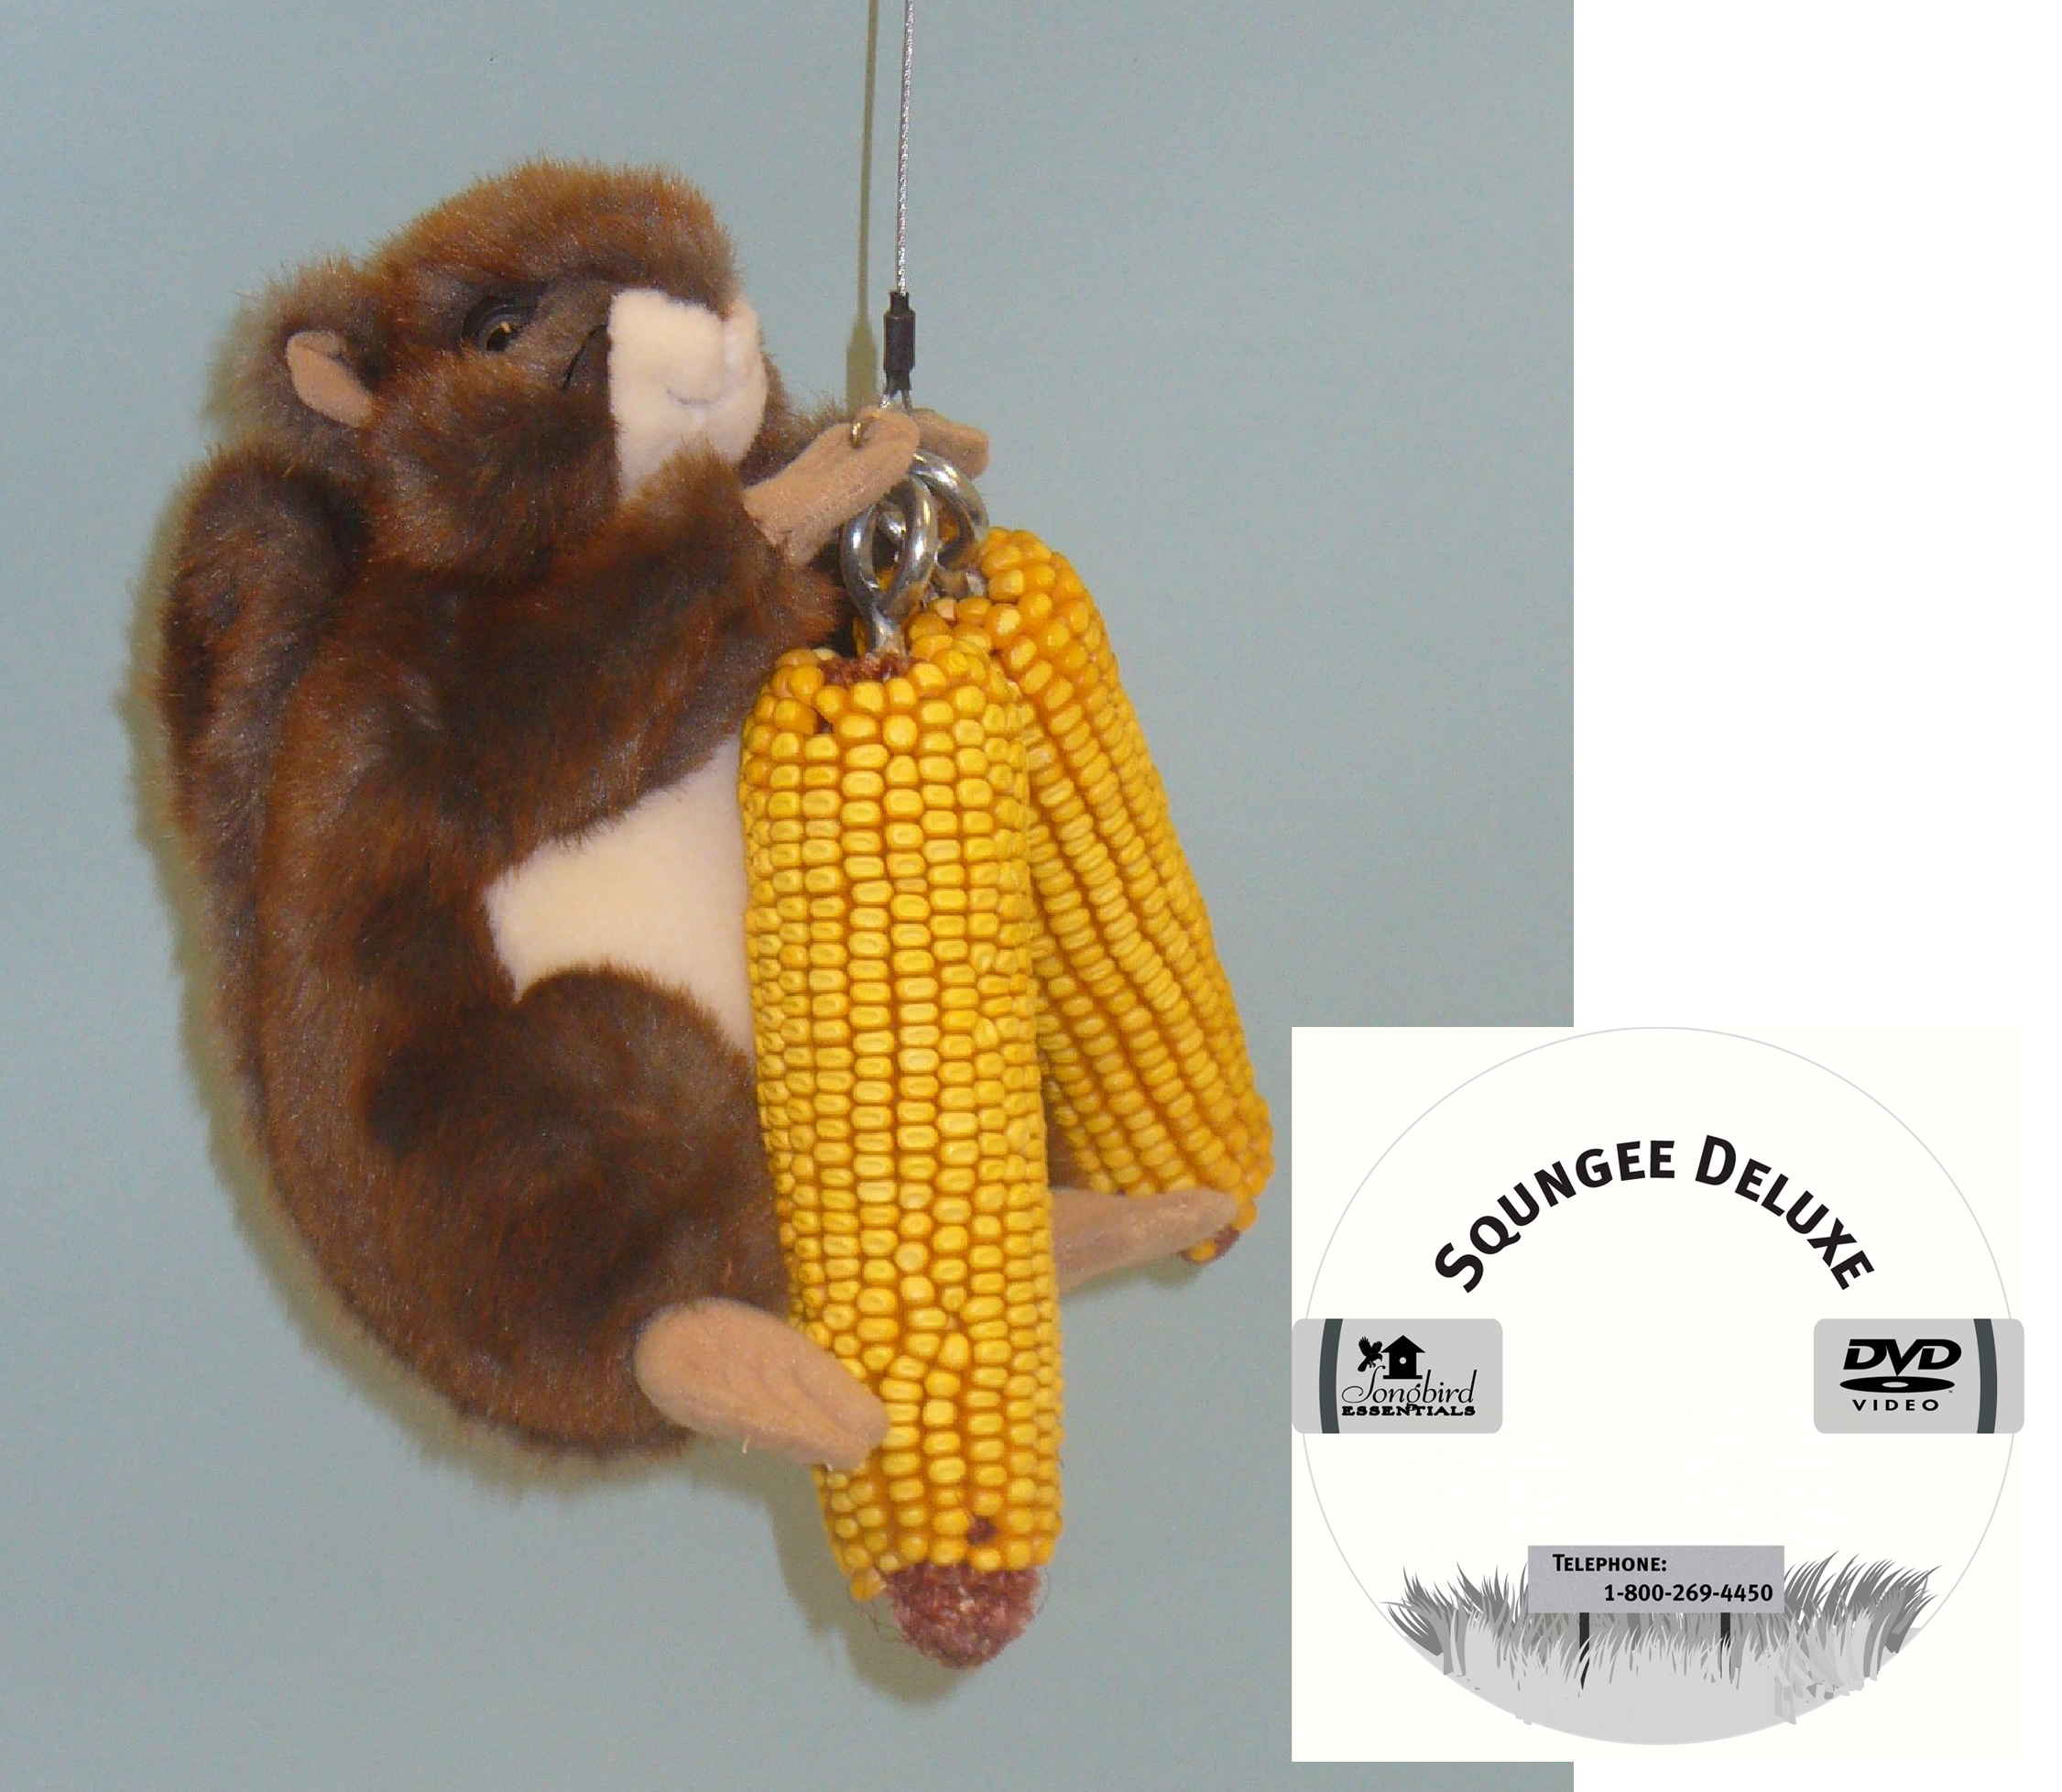 Squngee Display Pre Pak with Free Squirrel & DVD